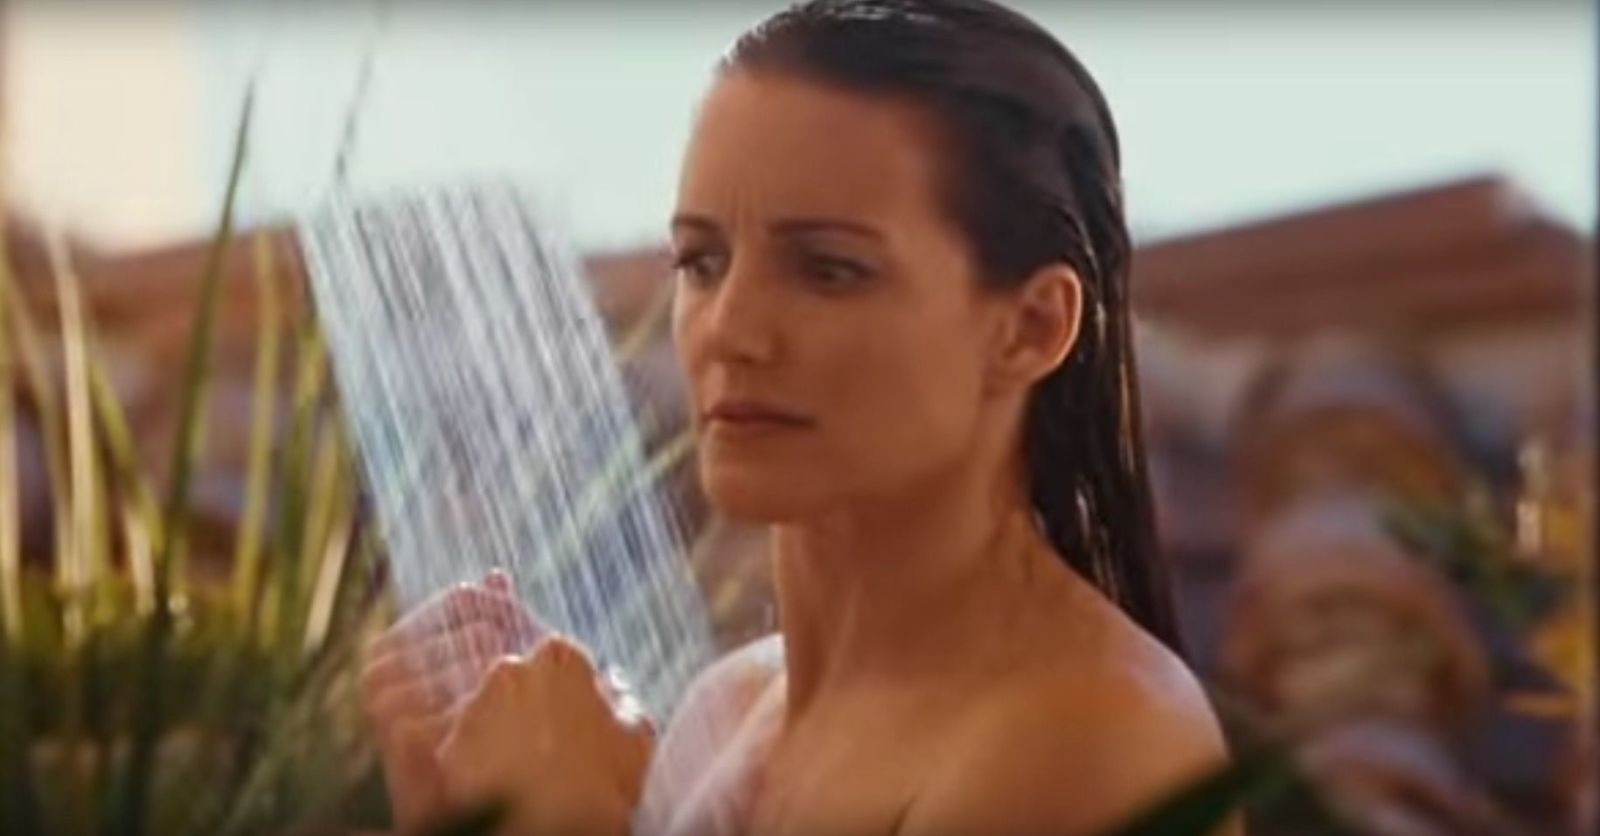 Hot Teen In The Shower